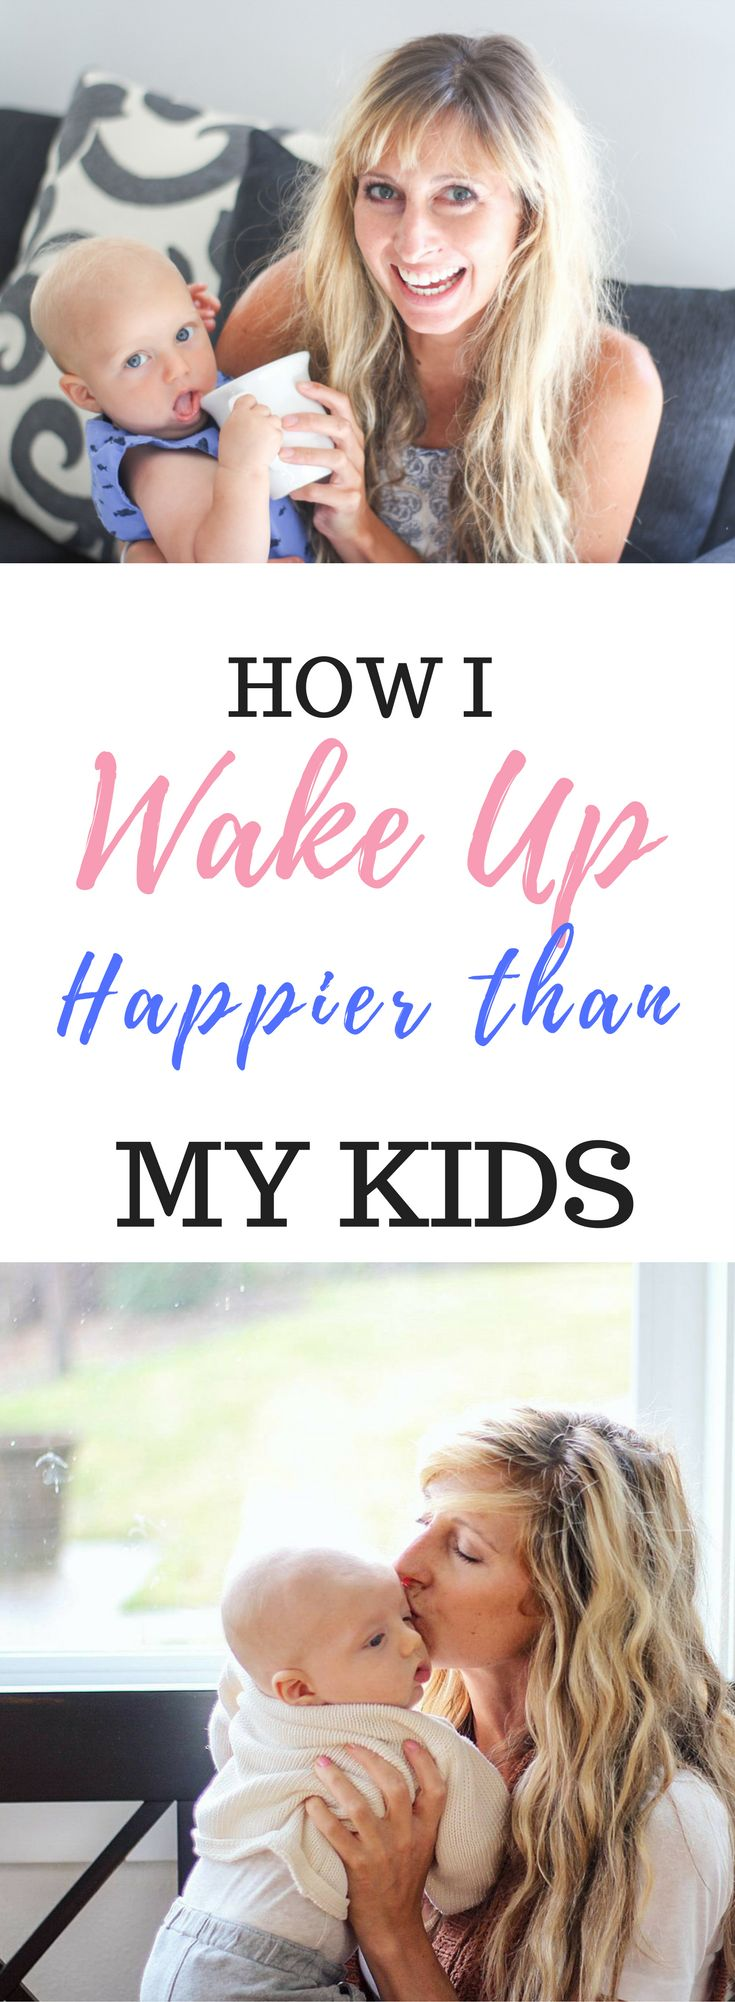 Tips for the morning to wake up happier with a toddler and young children@Brittany Cardona